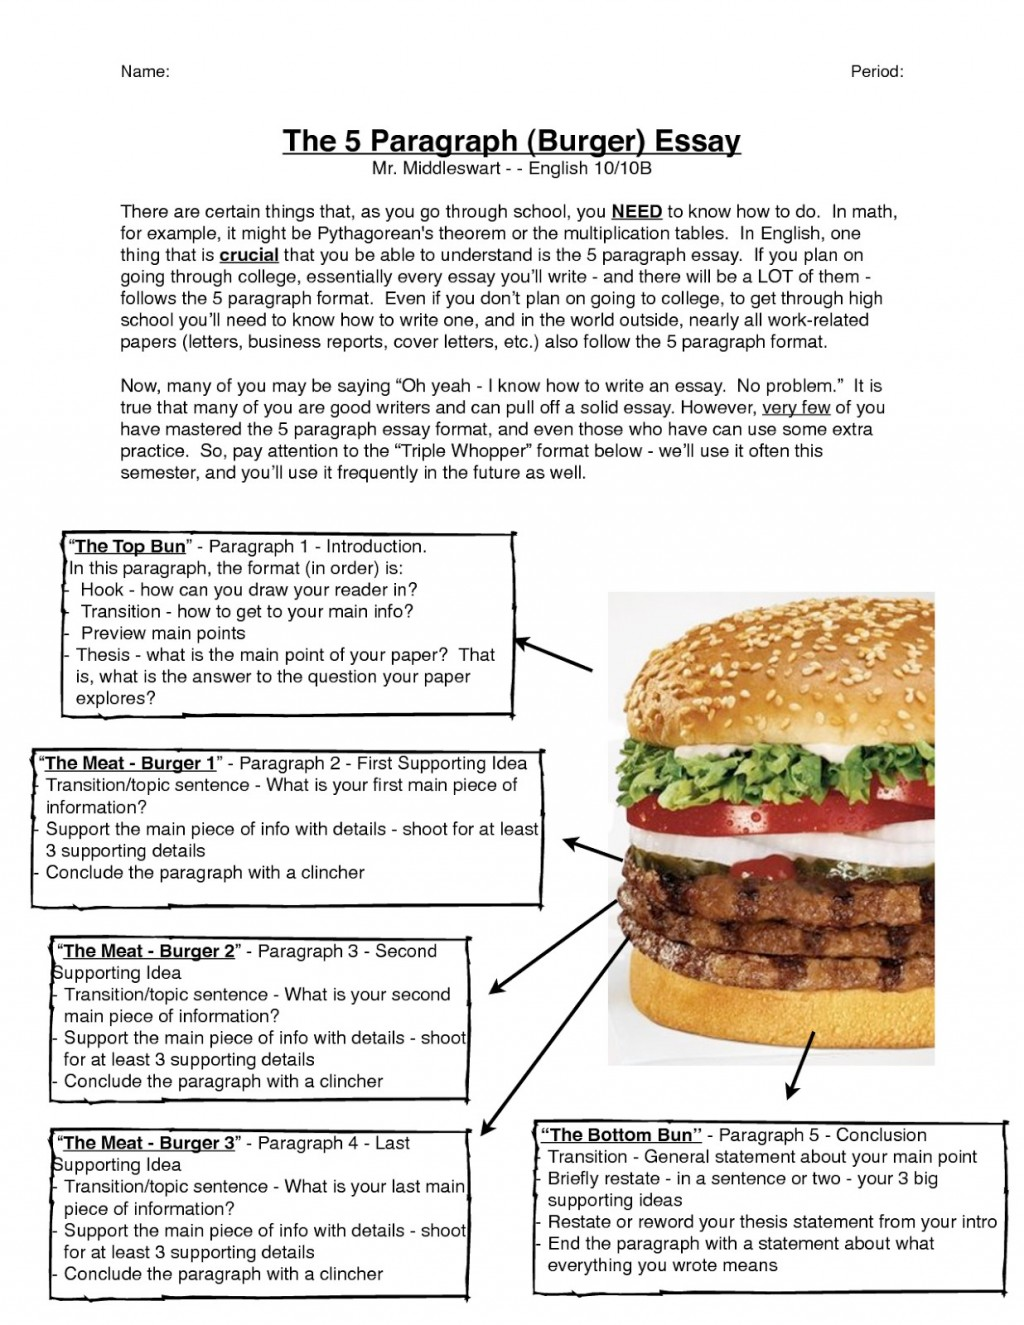 005 Paragraph Essay Hamburger How To Write An Singular Powerpoint Method Example Large